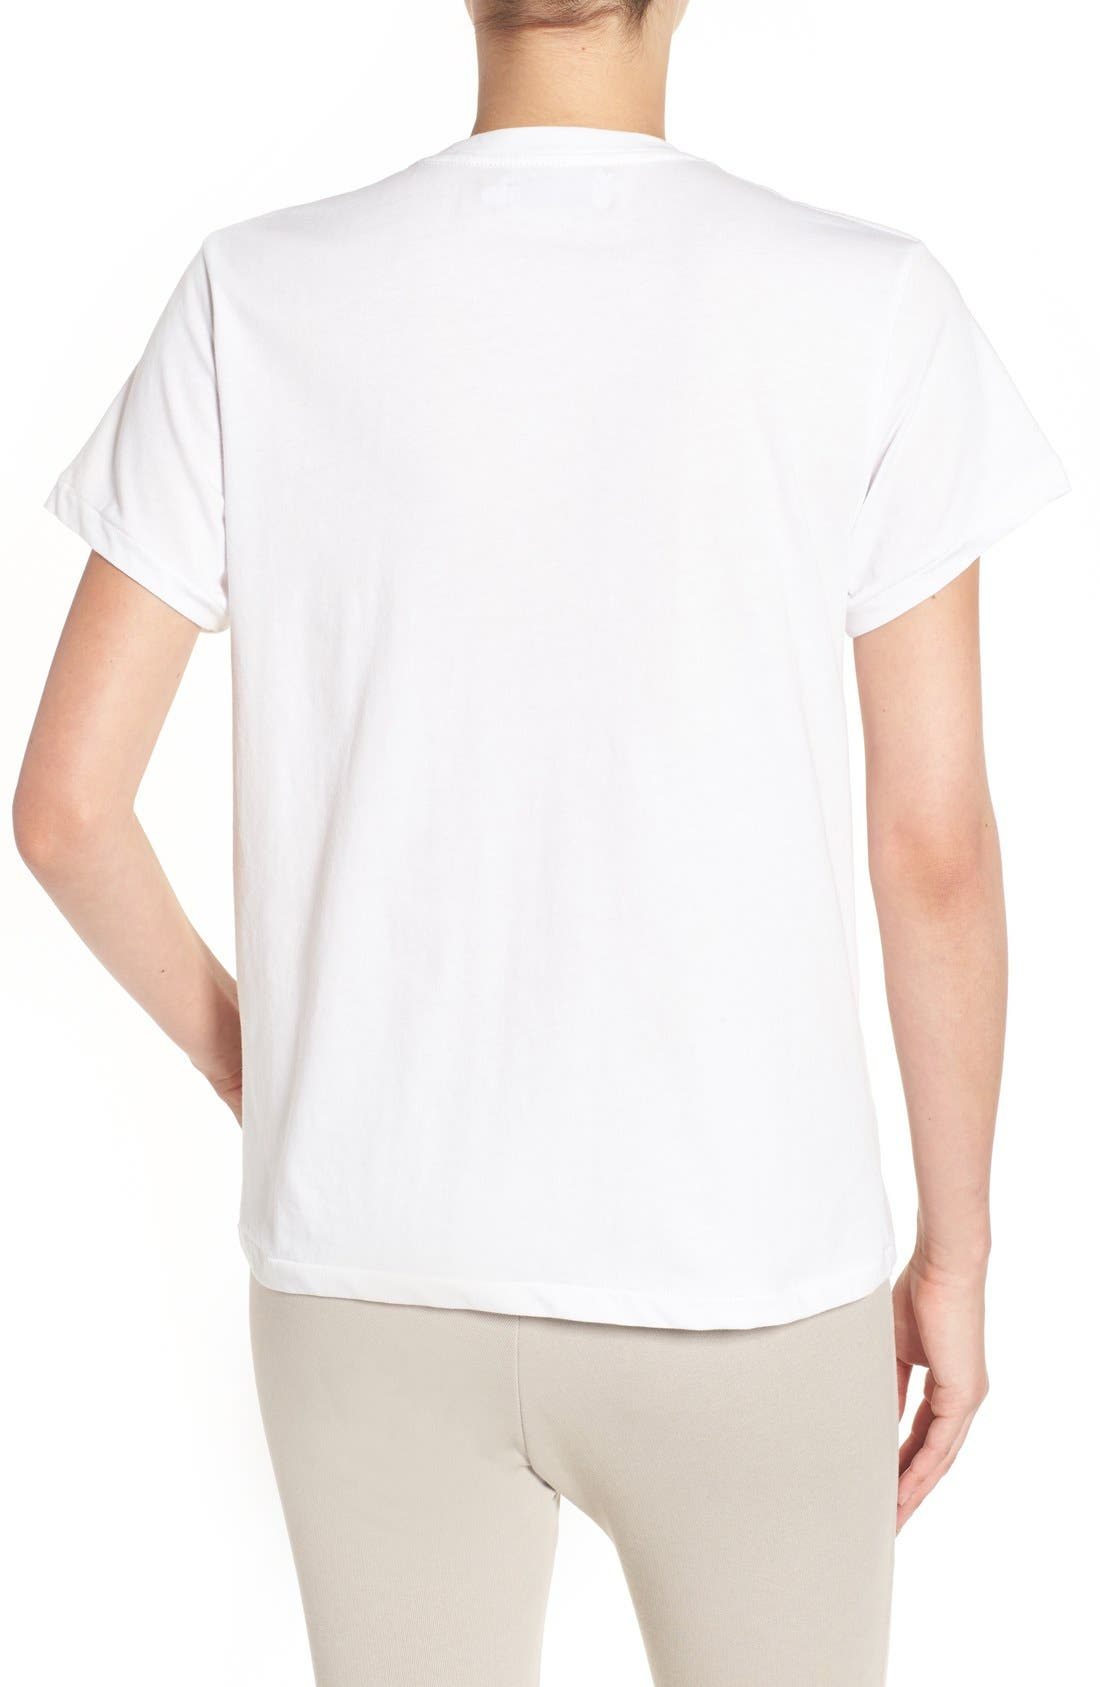 SINCERELY JULES,                             'Lips & Lashes' Graphic Tee,                             Alternate thumbnail 6, color,                             100